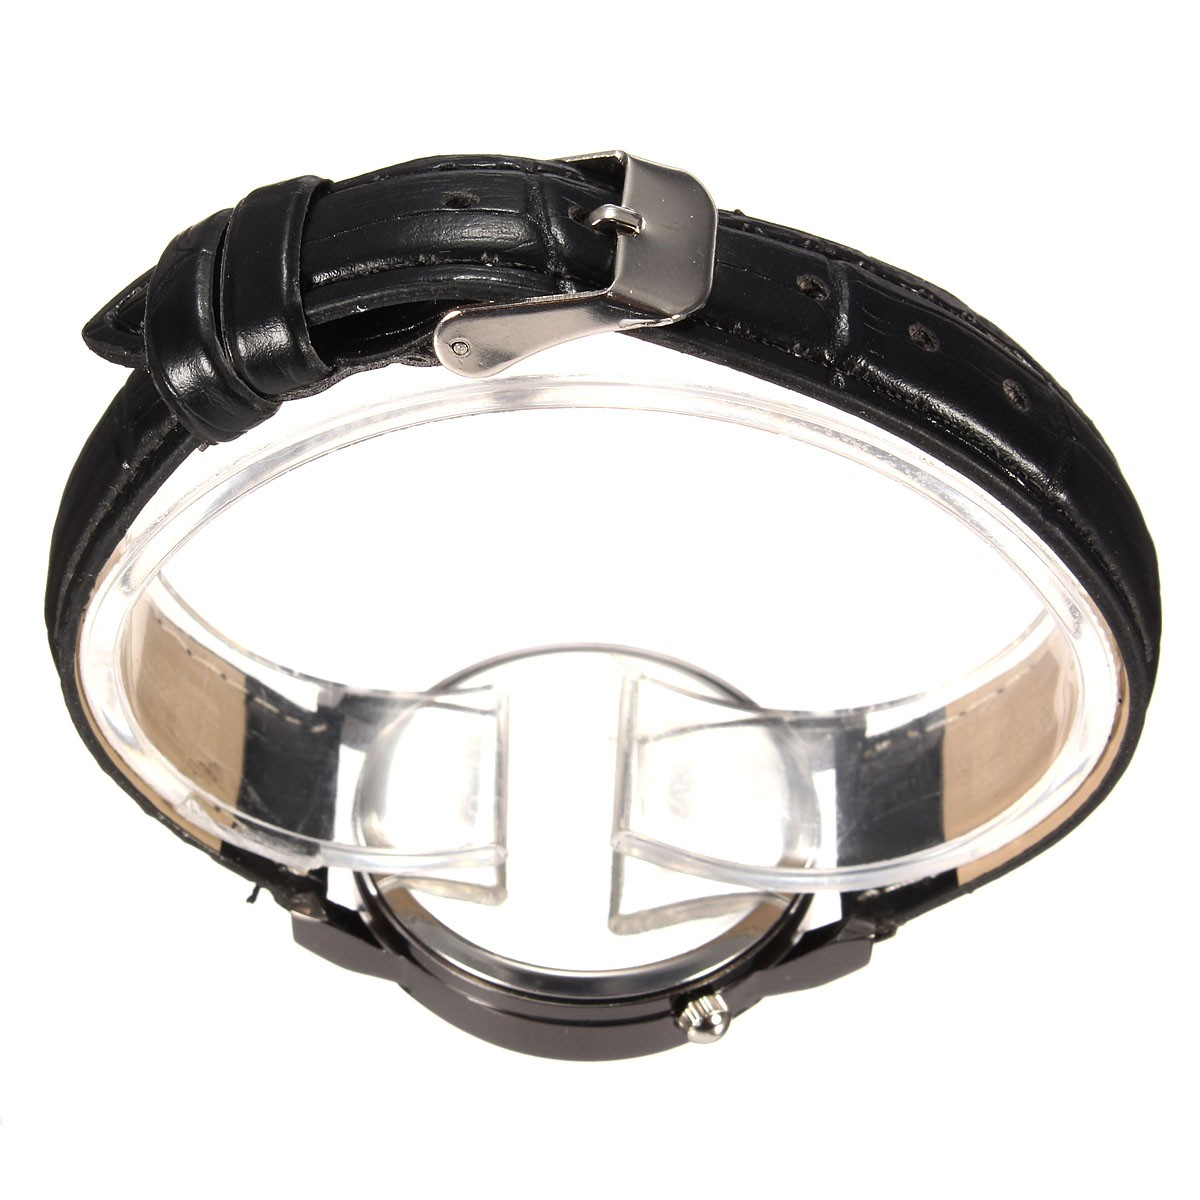 Casual Concise Analog Quartz Business Style PU Leather Band Wrist Watch